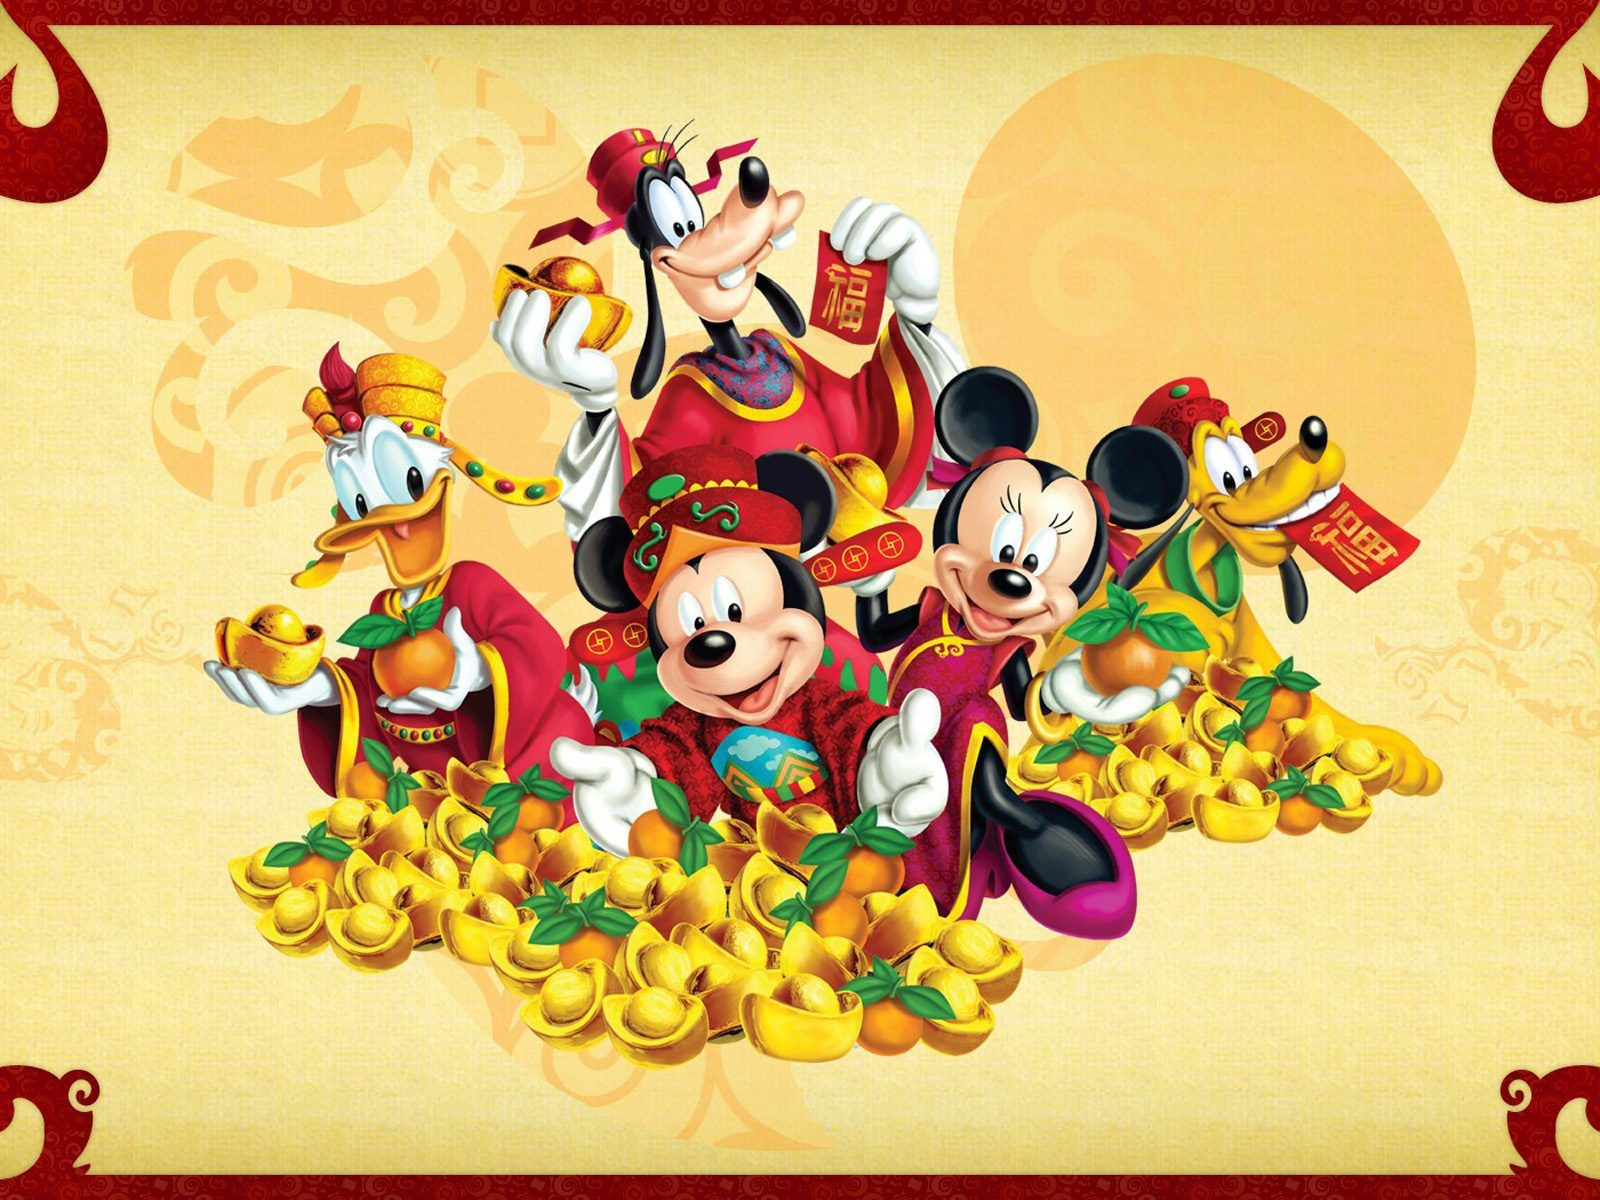 Disney Thanksgiving Wallpapers Mickey Mouse Chinese New Year 2110285 Hd Wallpaper Backgrounds Download